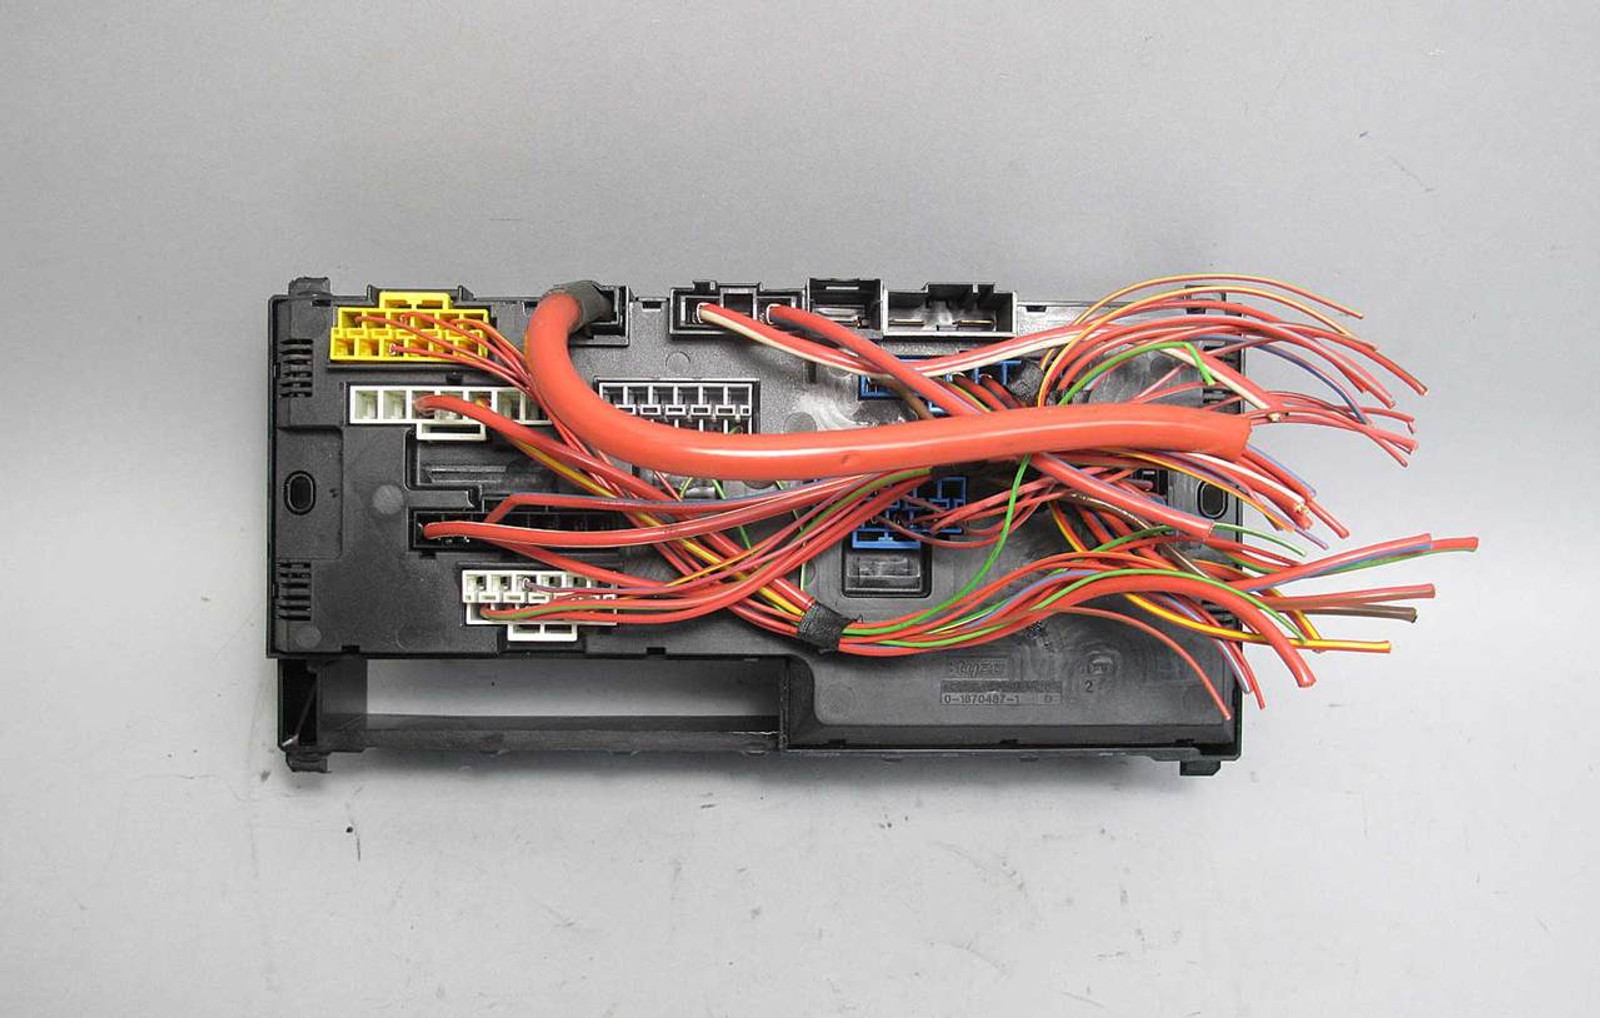 Bmw F10 Front Fuse Box Electrical Wiring Diagram E34 Distribution 5 Series F01 Early Dashboard Panel